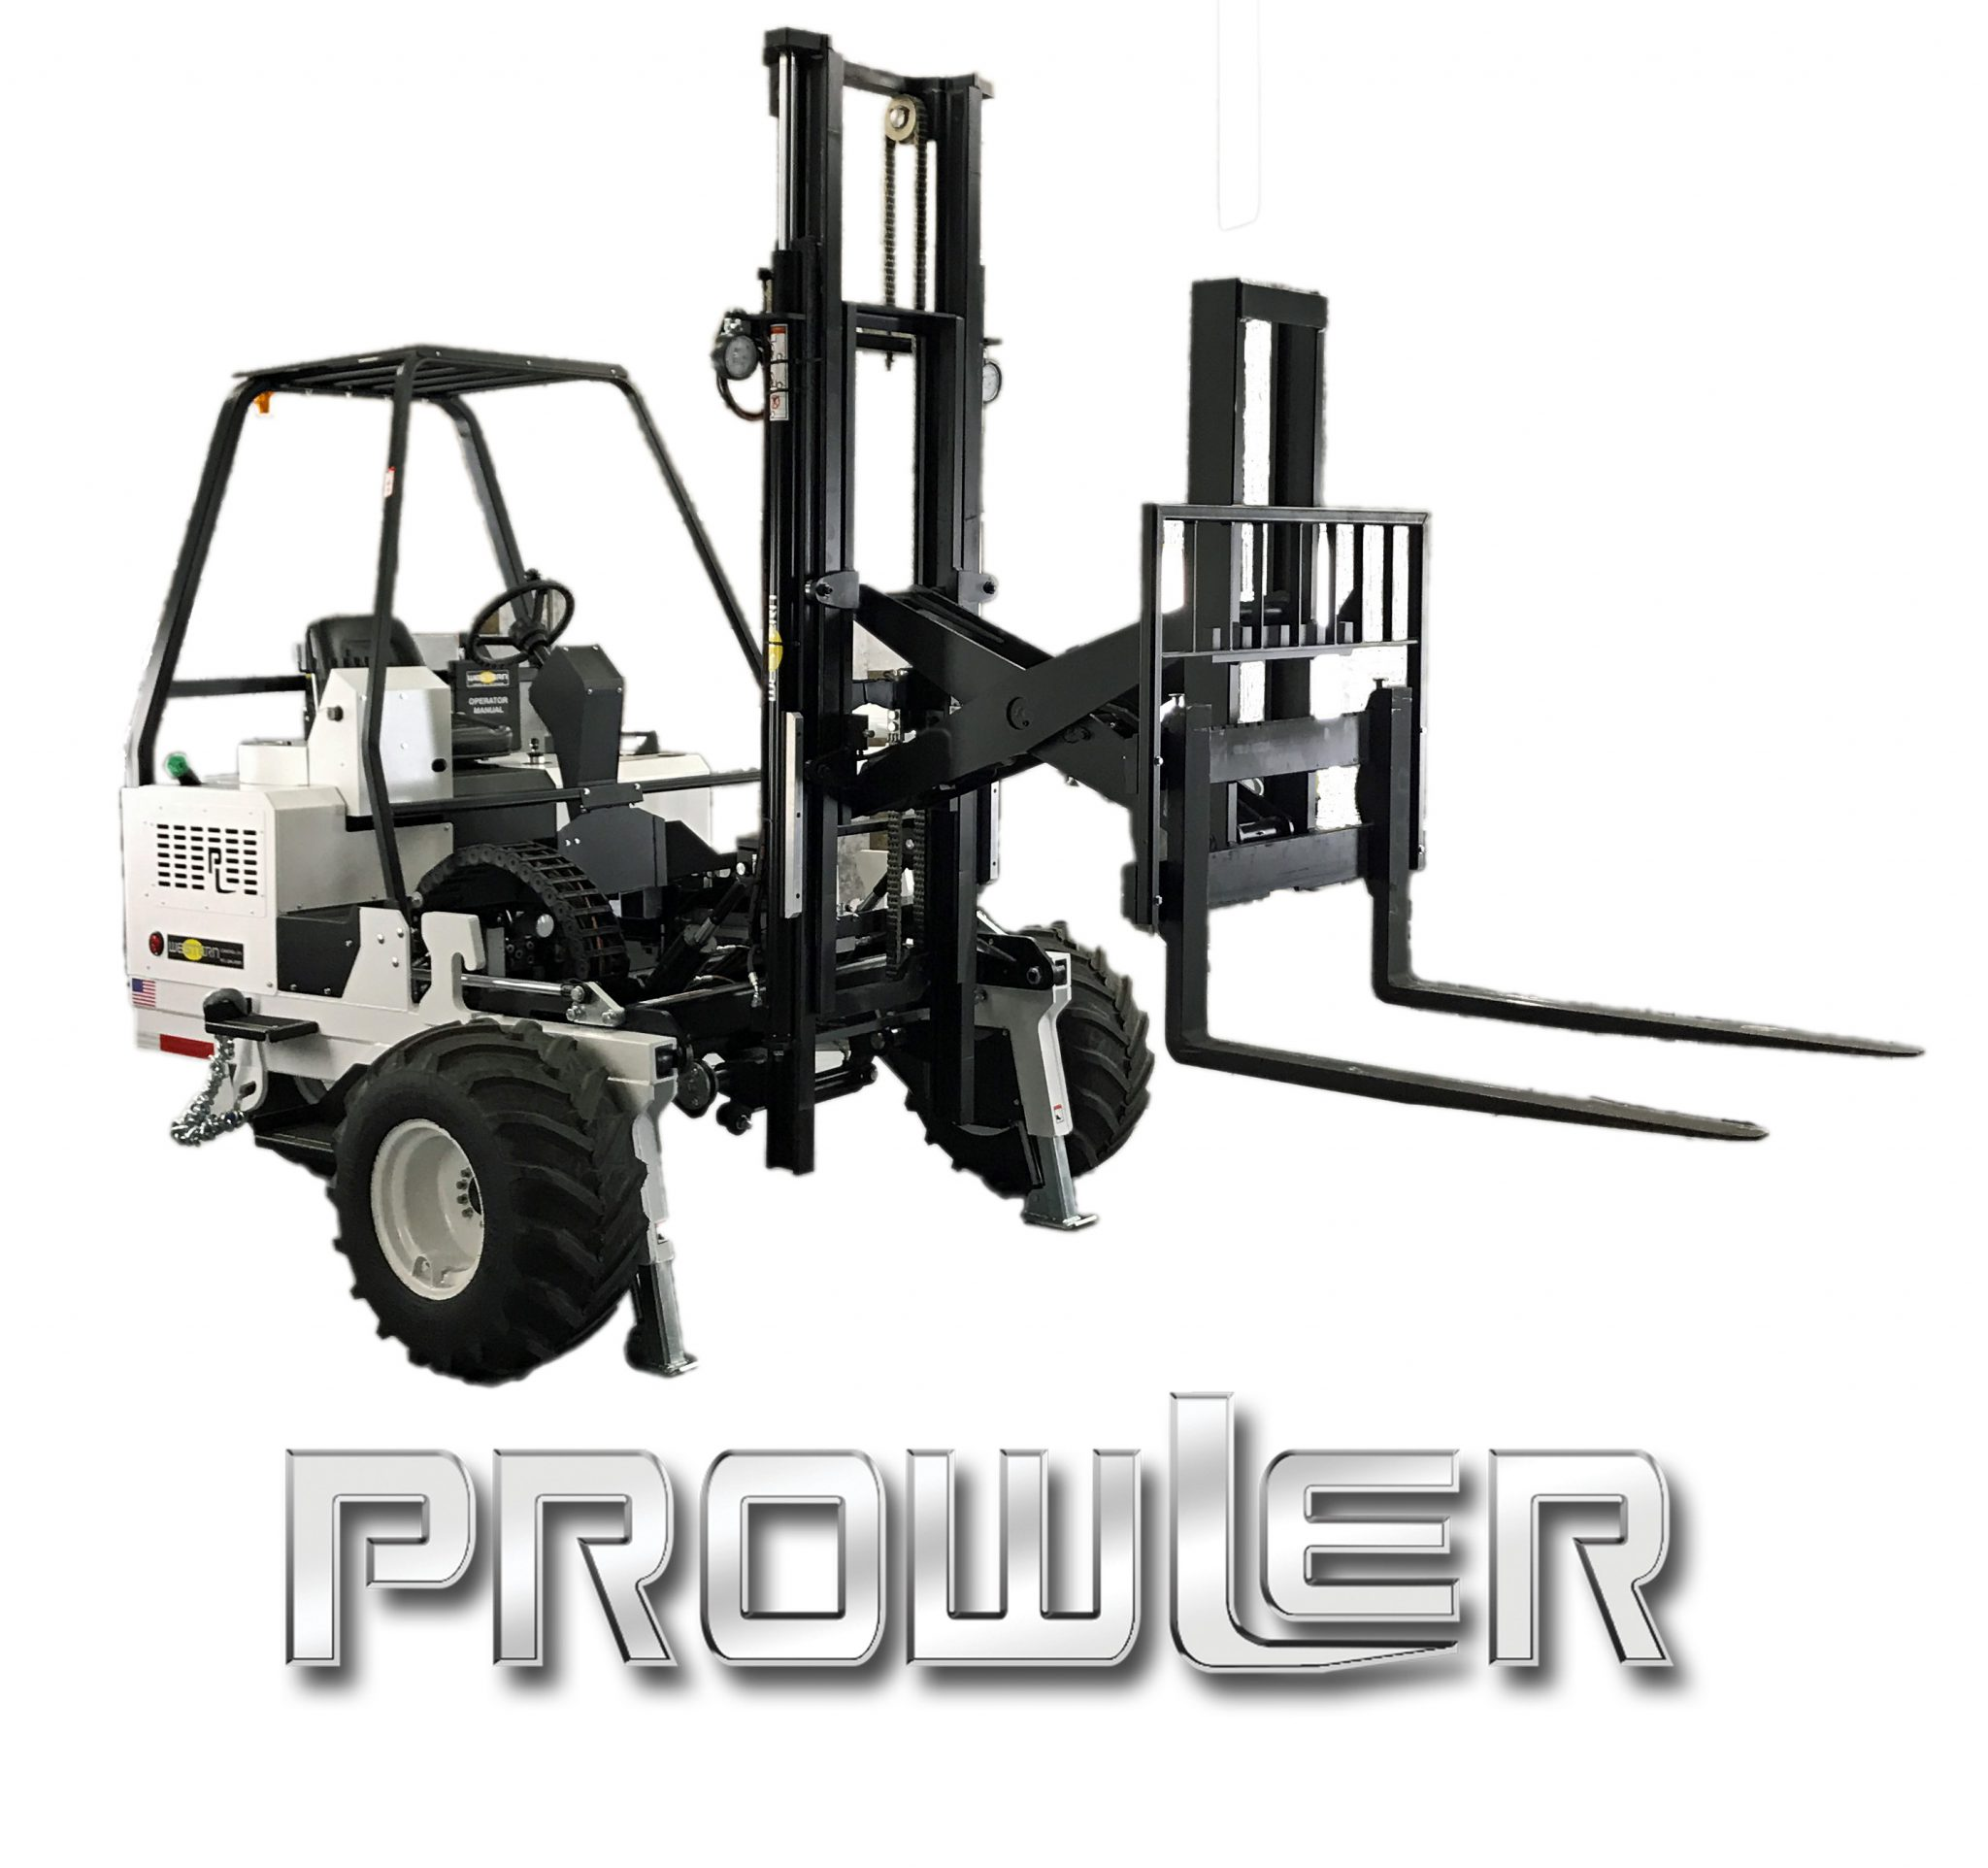 New Prowler Forklifts